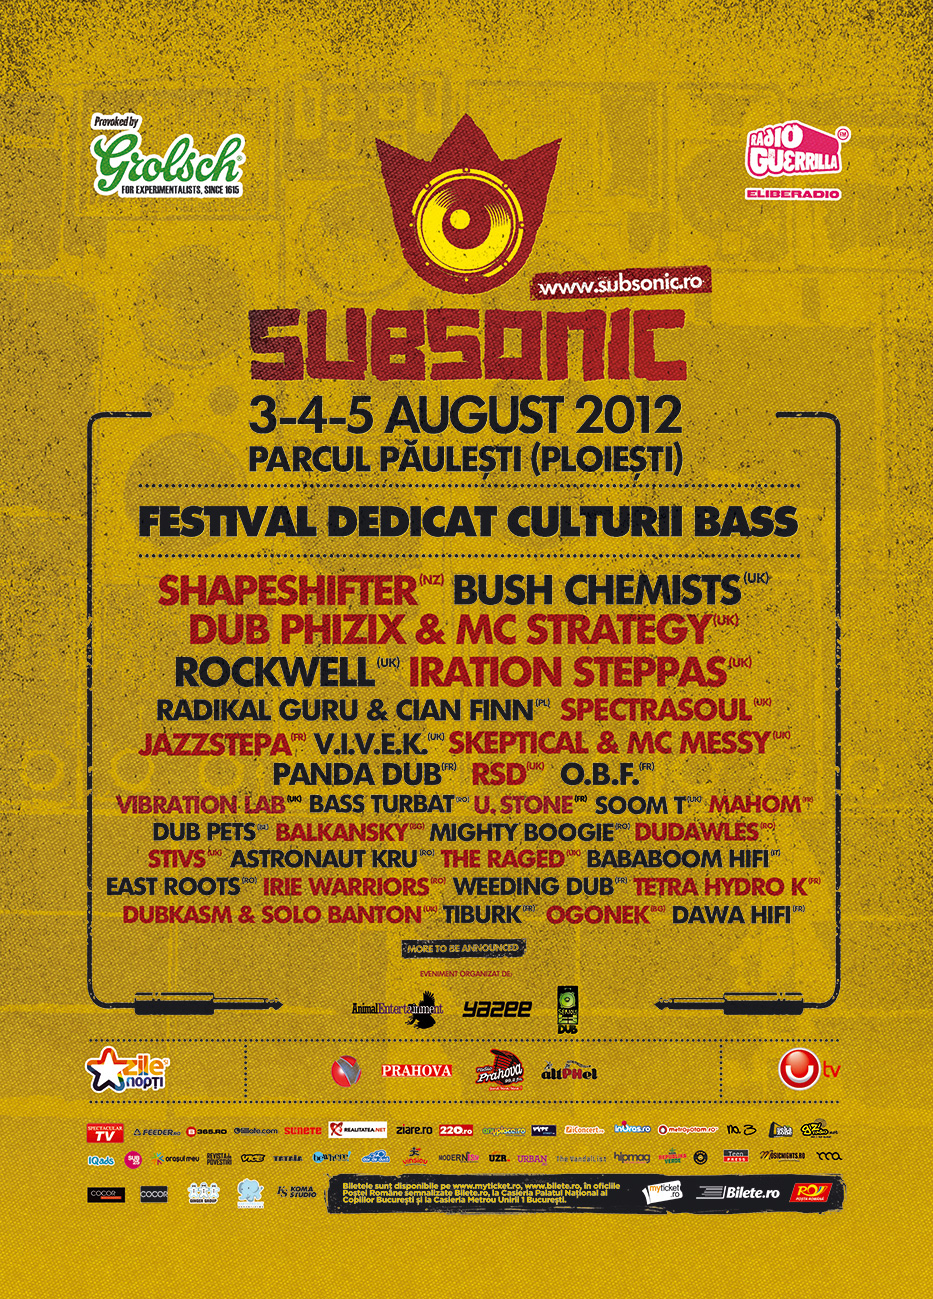 Subsonic Festival